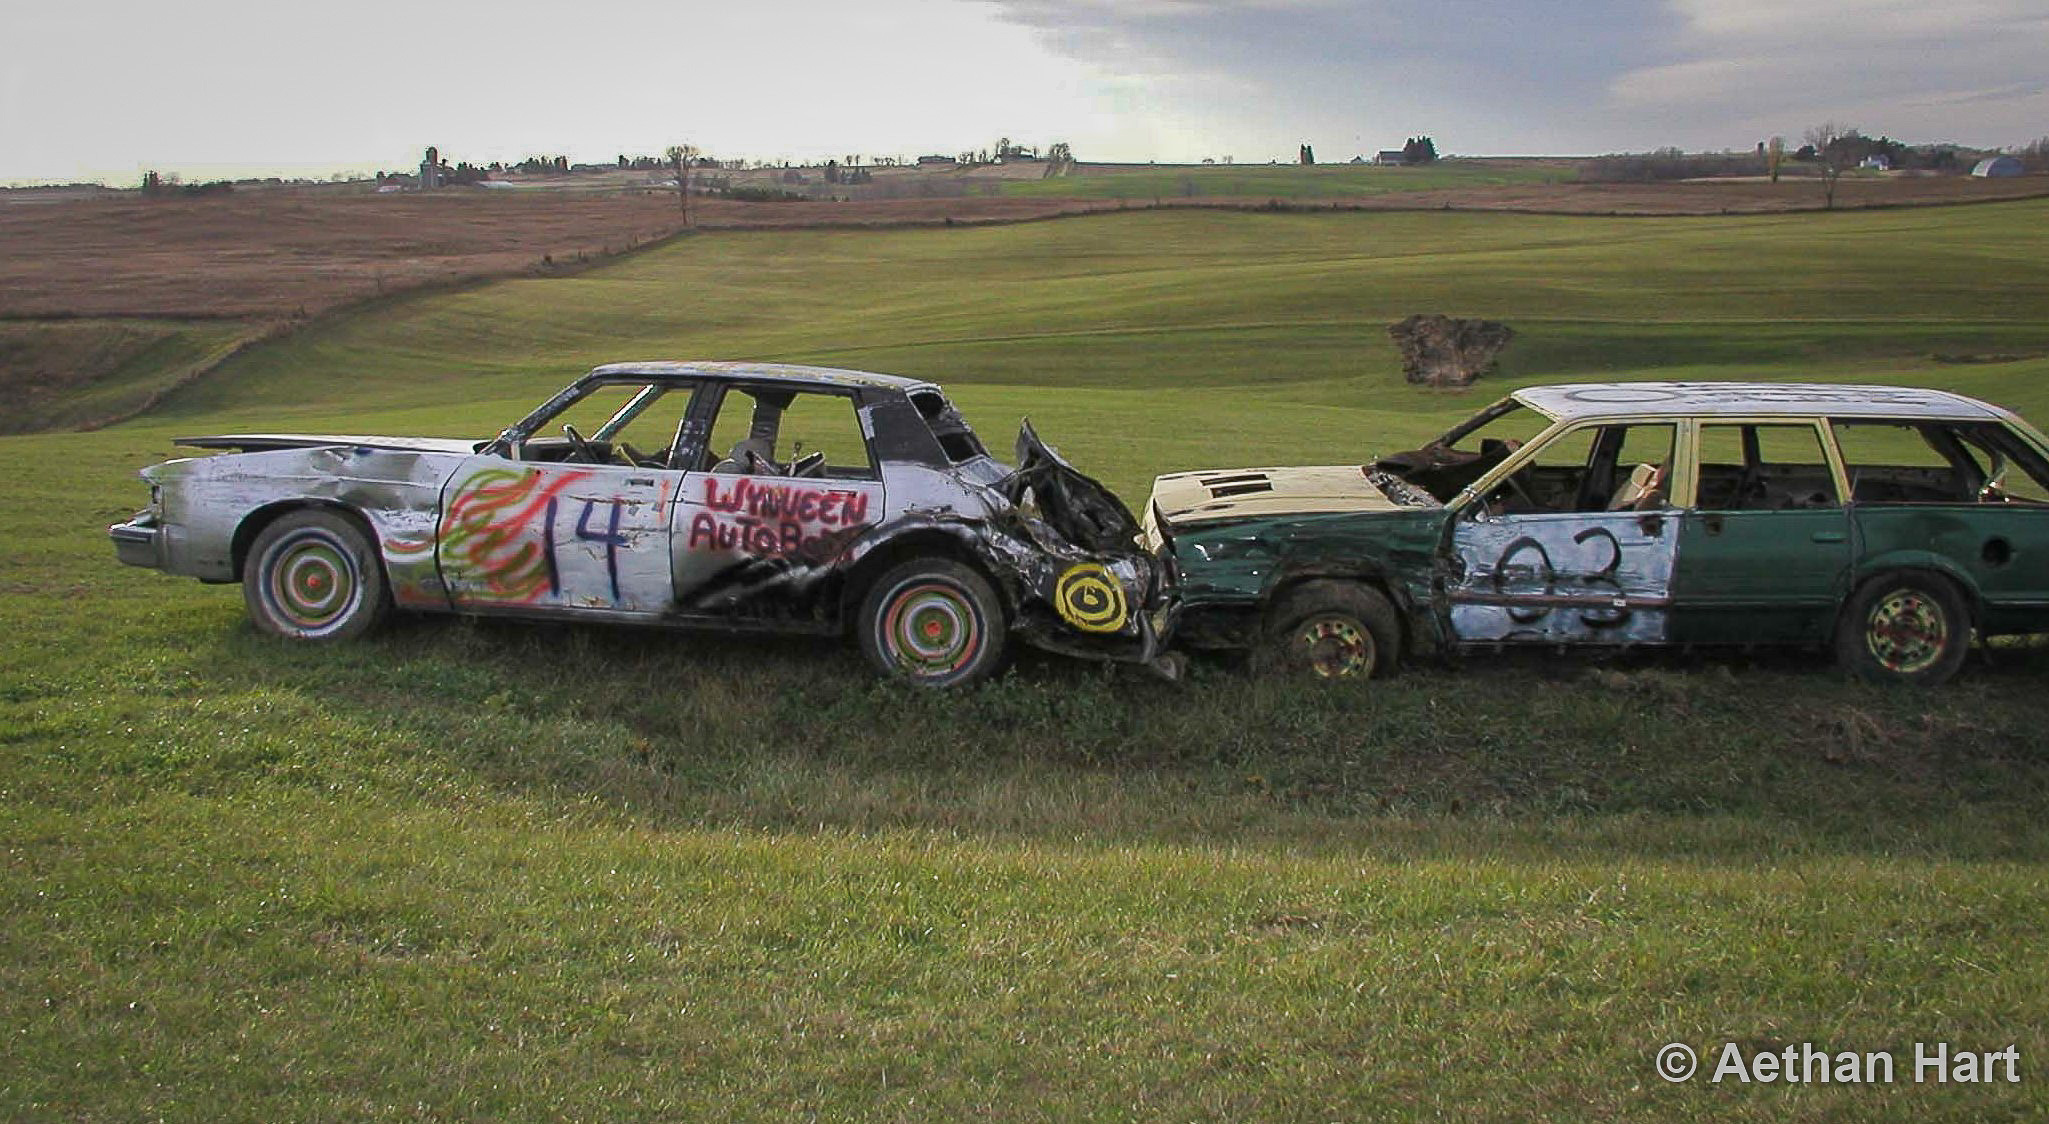 Wisconsin Cars in a Field